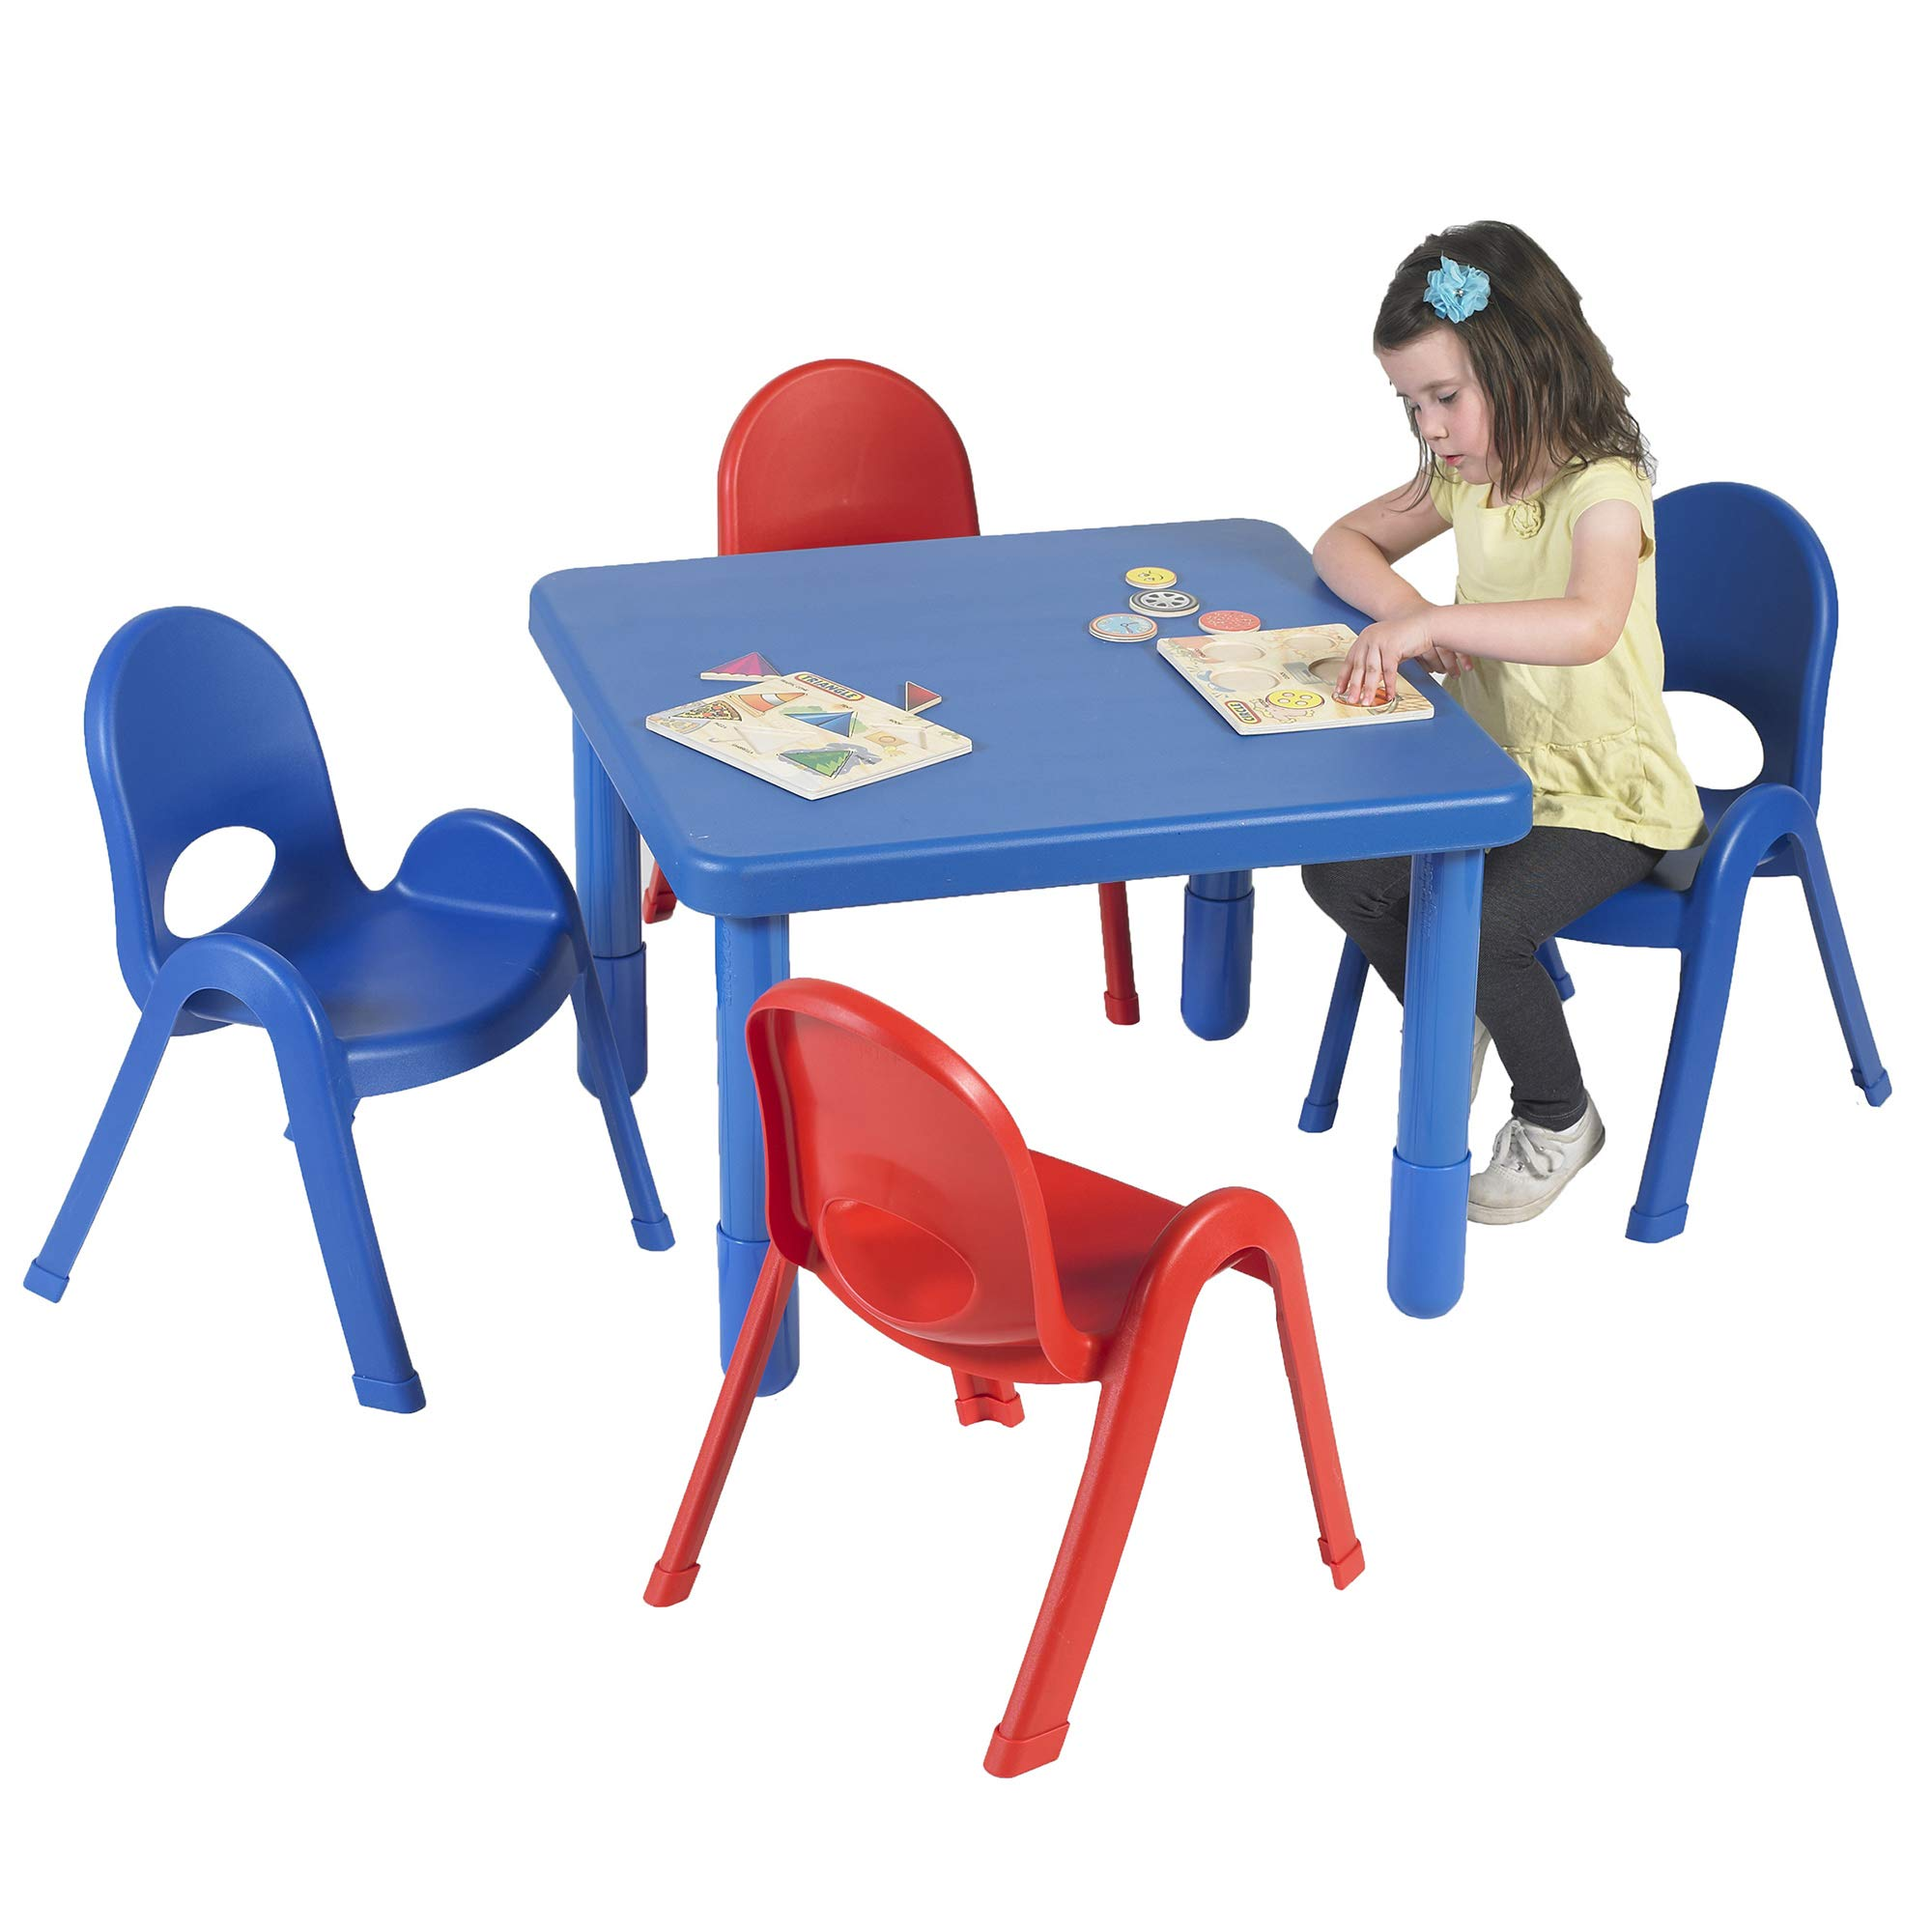 Angeles Preschool MyValue Square Table and Chairs Set, Royal Blue/Candy Apple Red - Includes One 28'', 20'' High Square Table and Four 11'' High Chairs - Durable, Lightweight, Easy to Move by Angeles